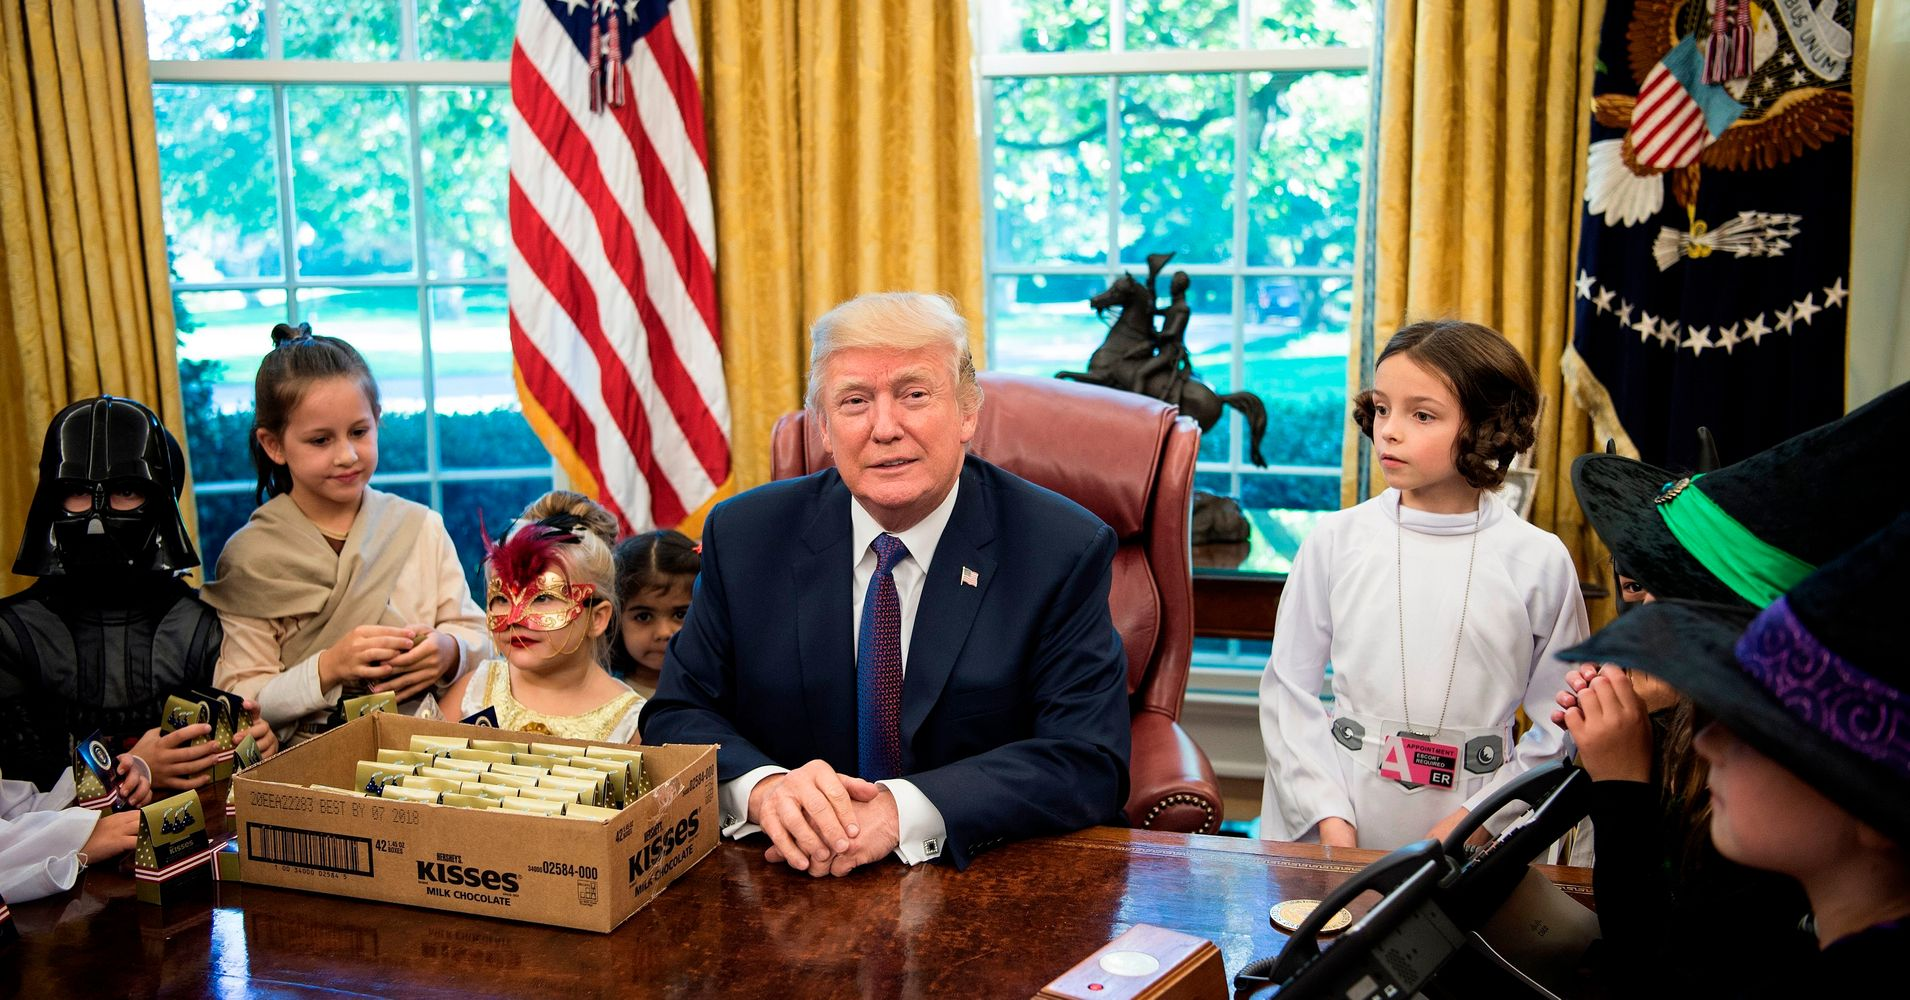 OK Mr. President, we get you don't like the media and most of that contempt is well deserved. But give it a rest in front of the kids.